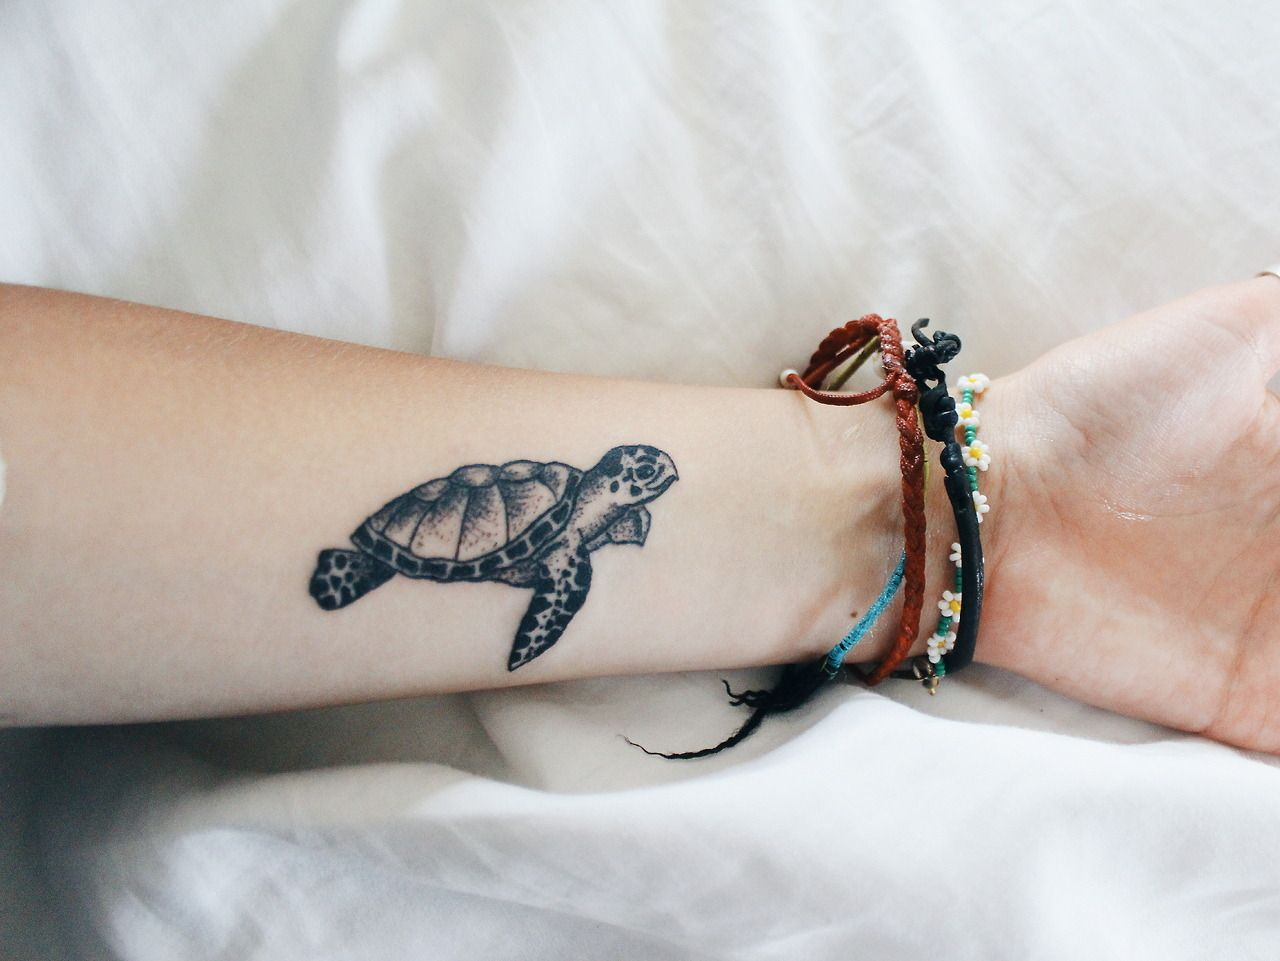 9 Glorious Turtle Tattoos That Are Best In Tattoo Designs ... |Artsy Turtle Tattoos